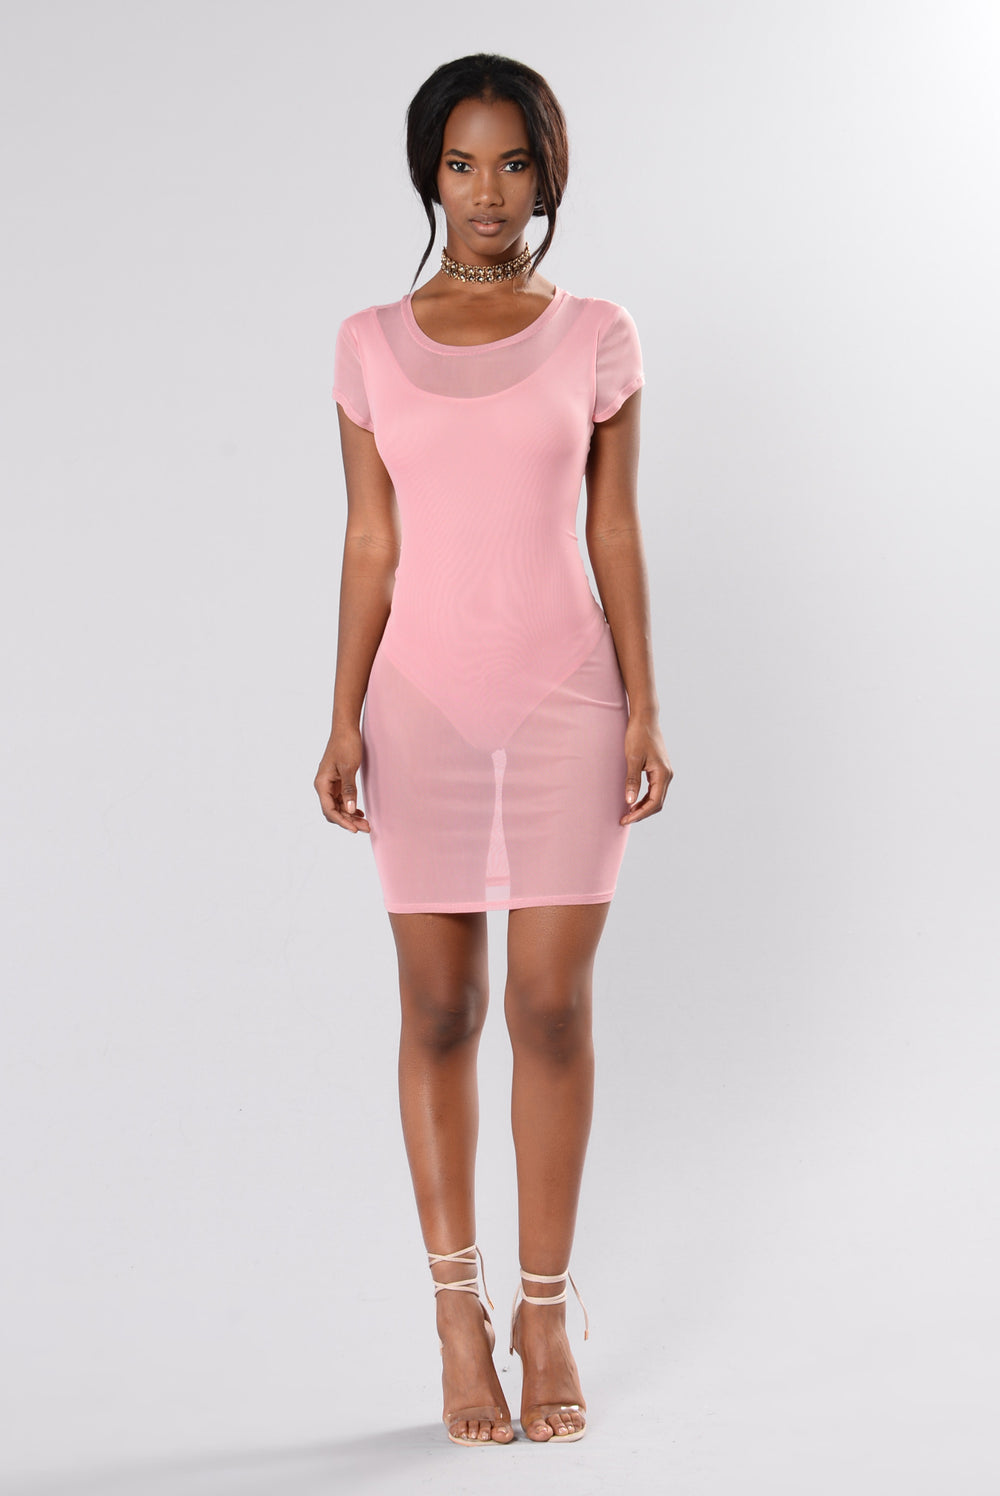 Skyler Dress - Mauve